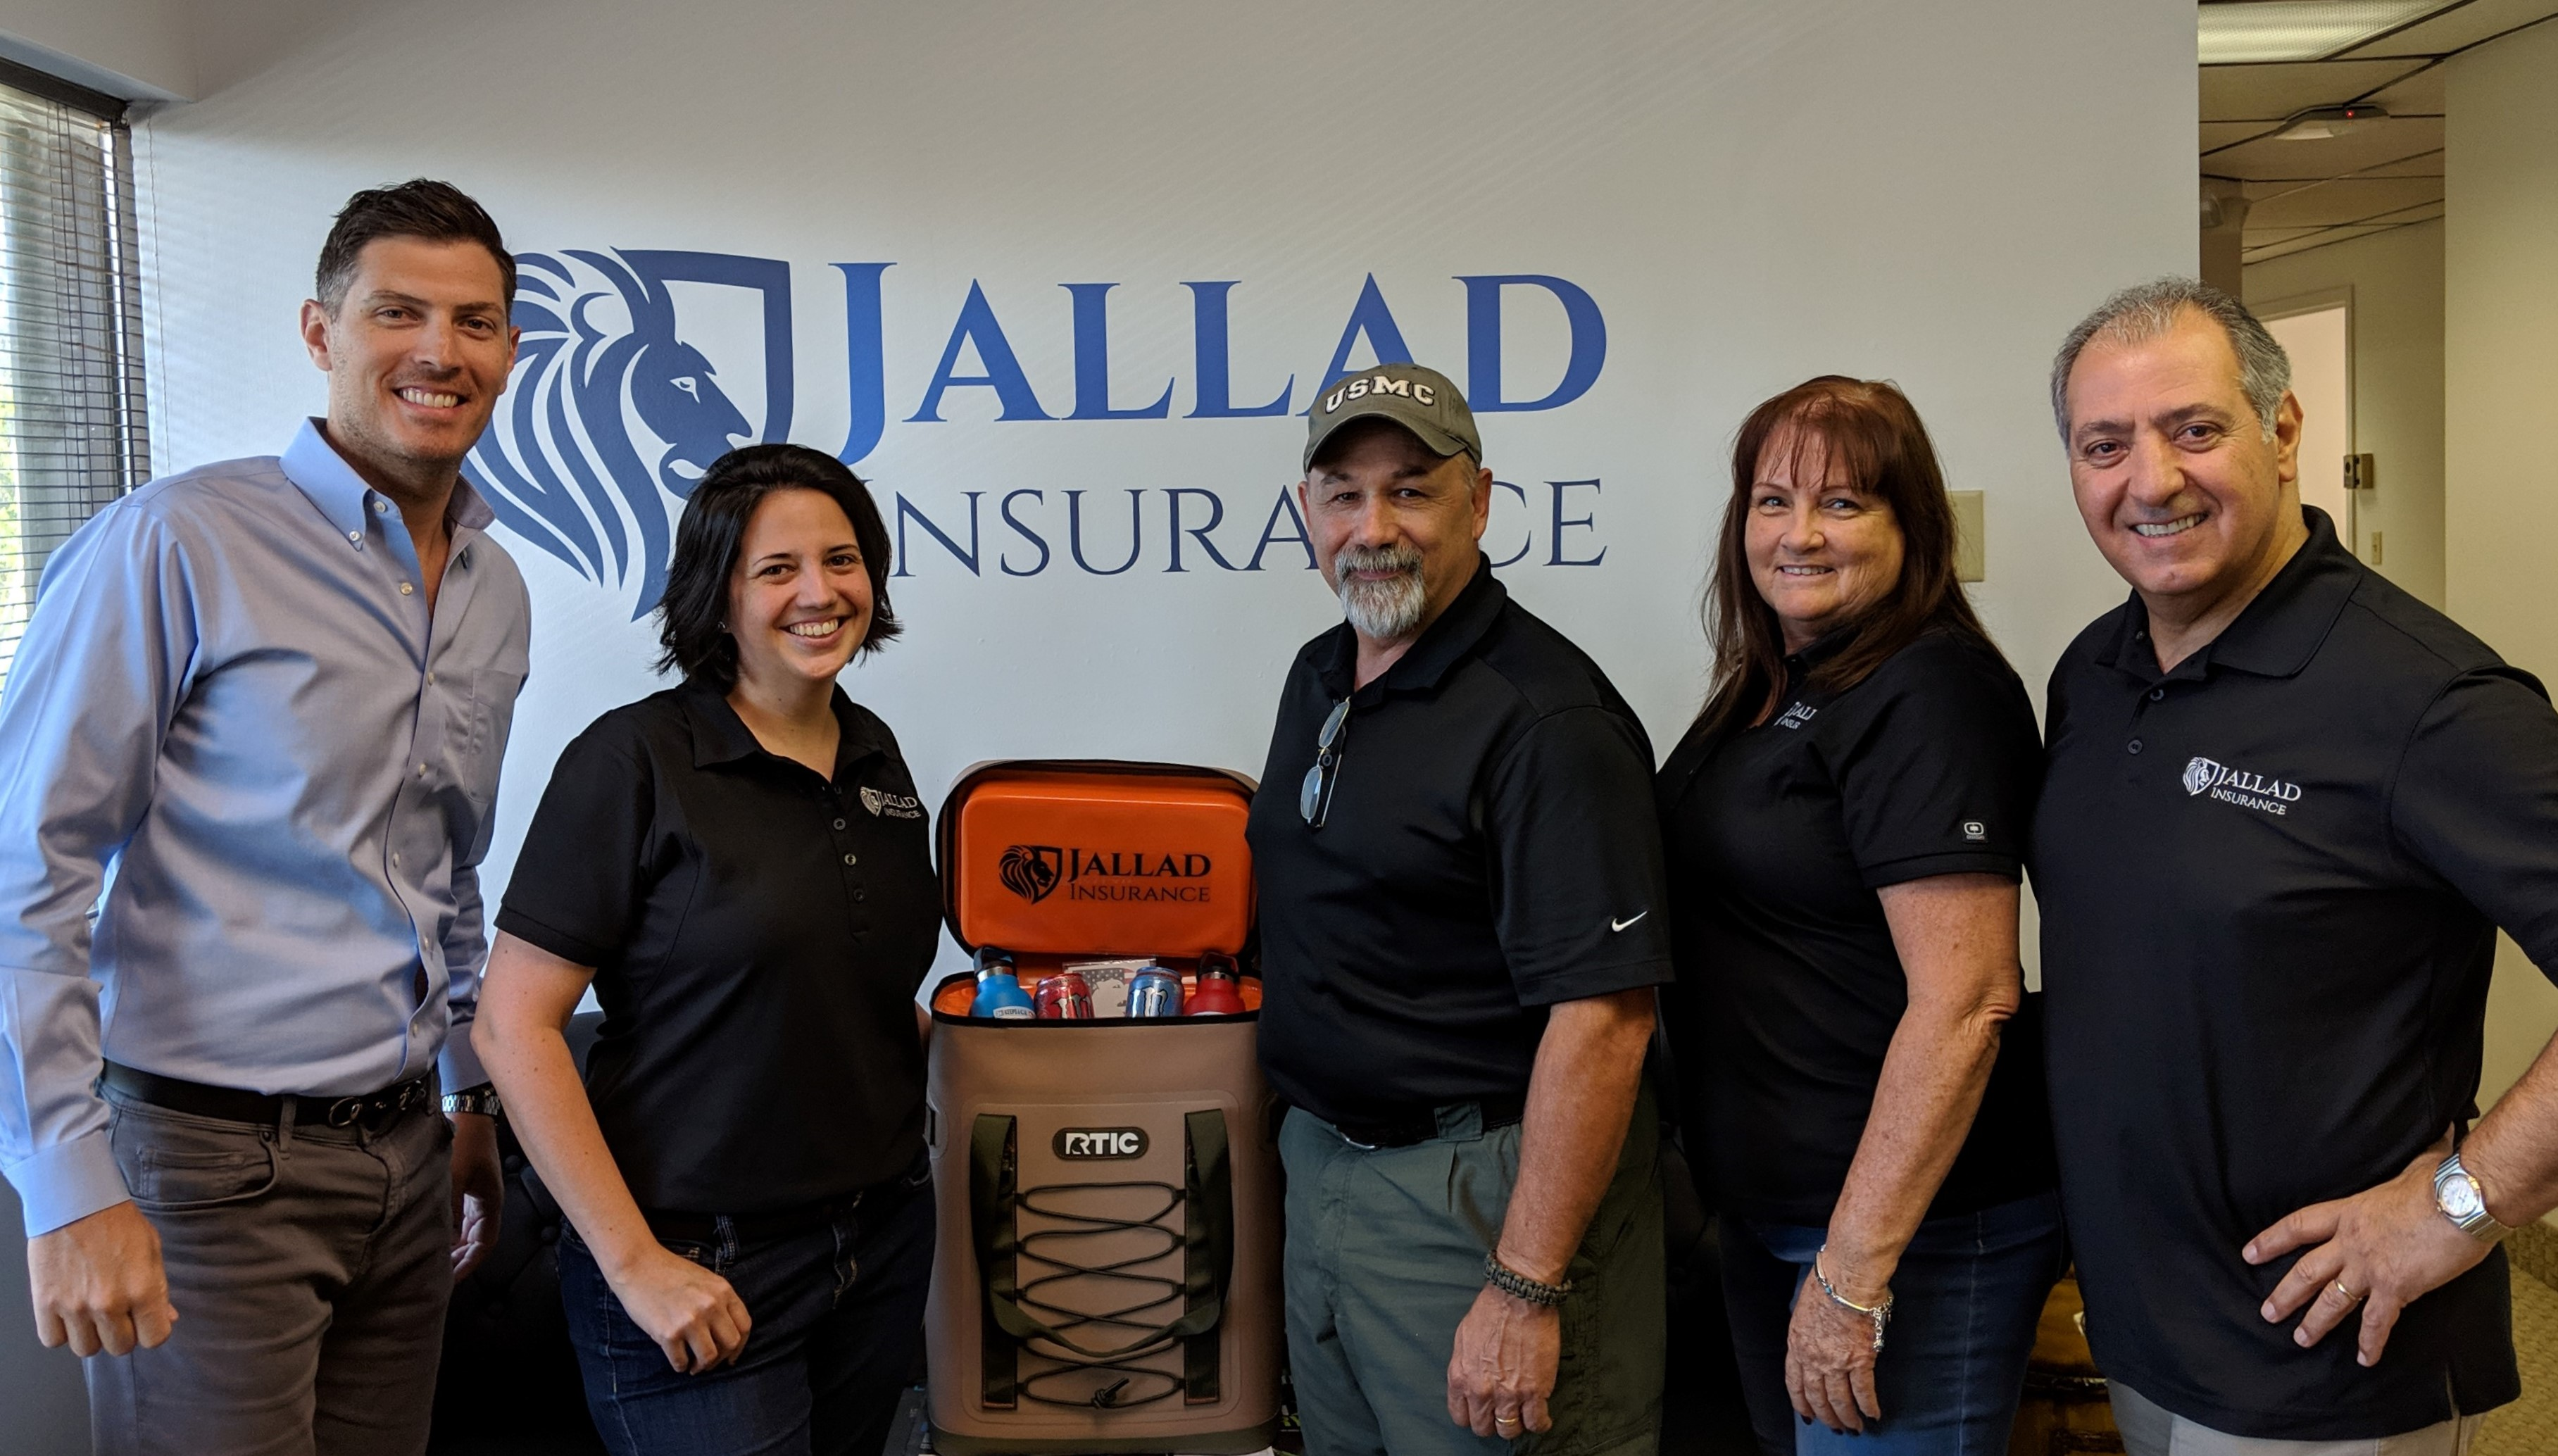 Jallad Insurance Team members & Paul from Iron Pigs with donation.